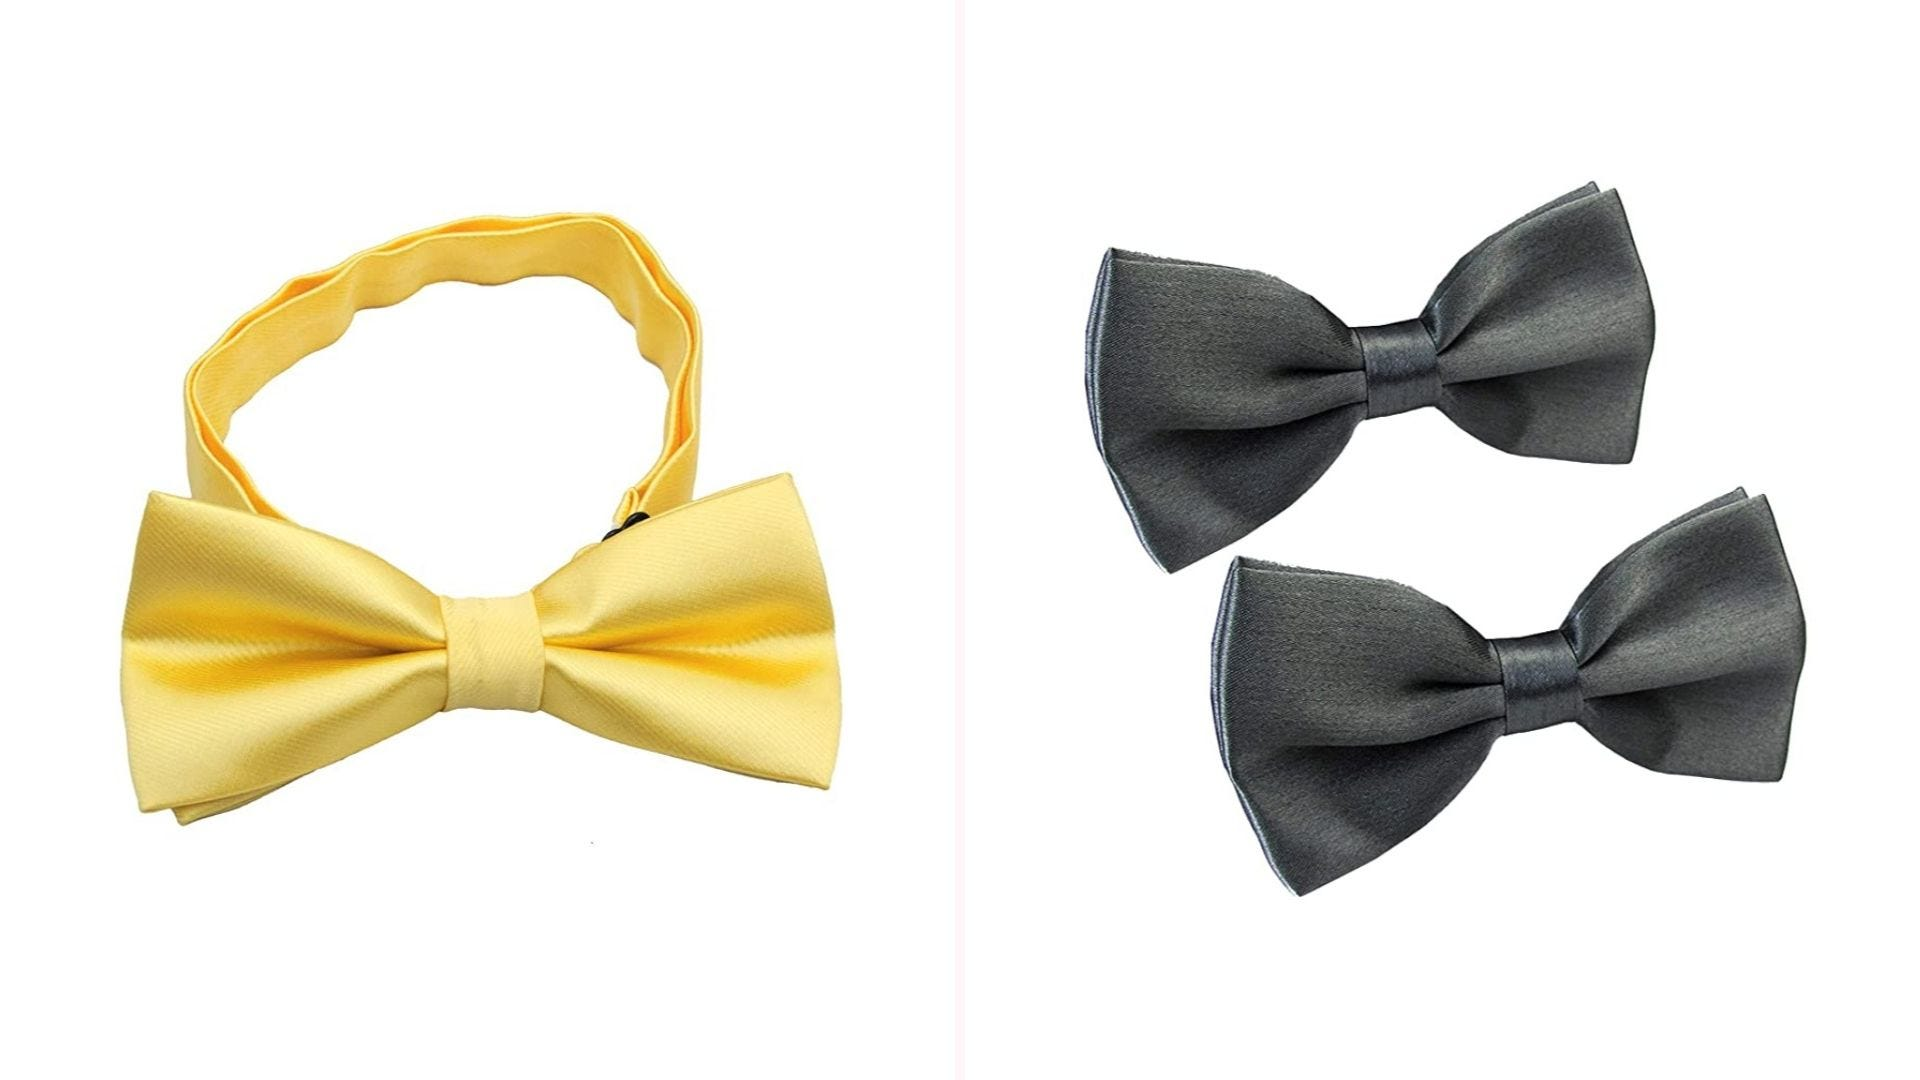 On the left, a light yellow bow tie with its neck strap. On the right, two grey bow ties.